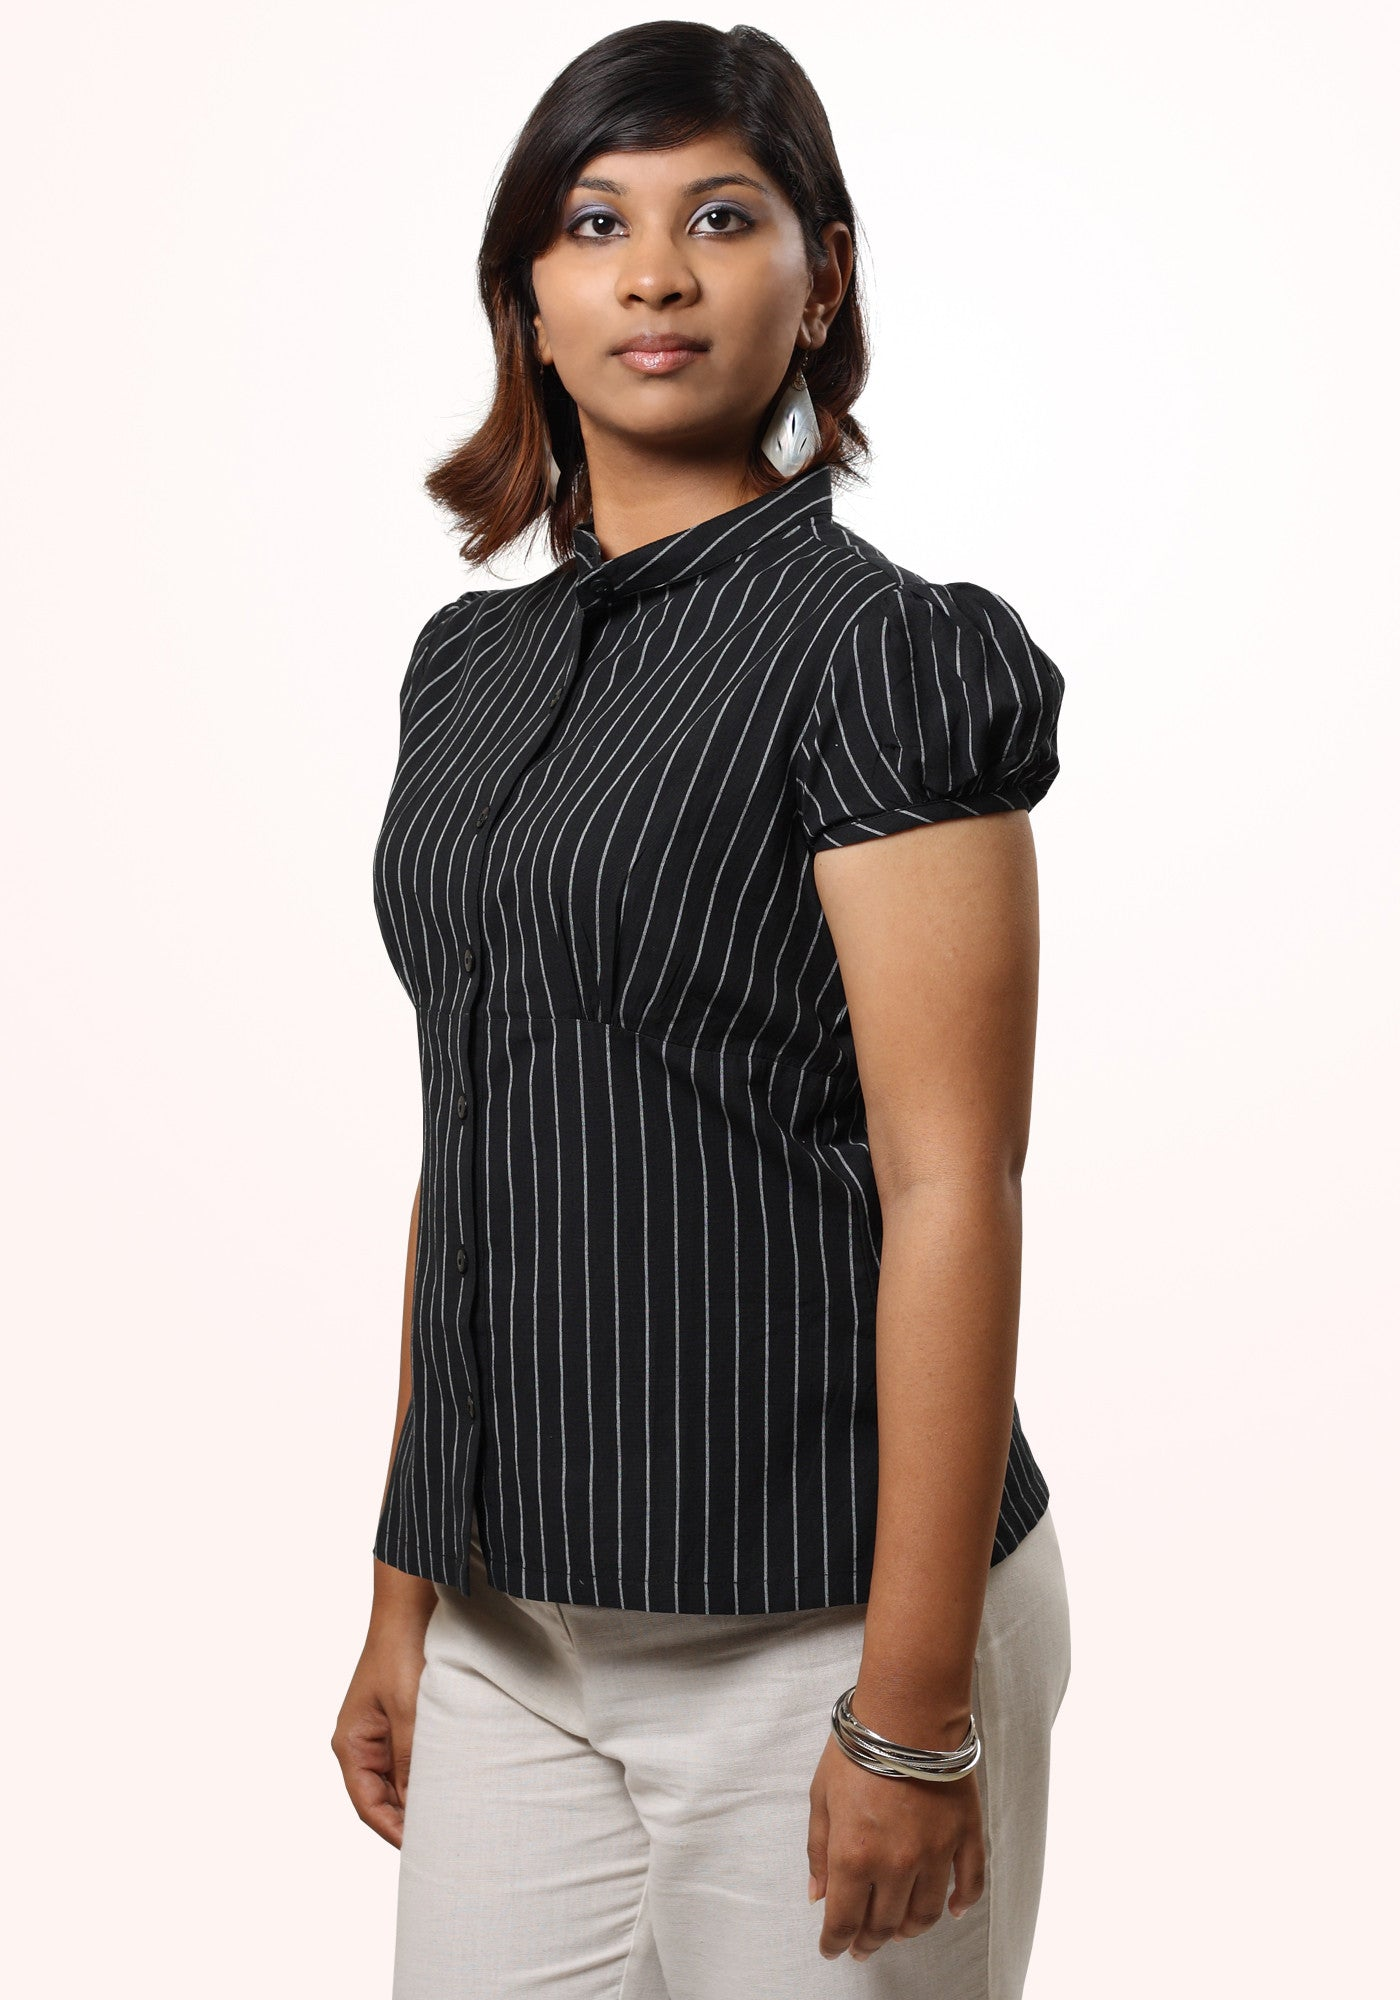 Short Sleeve Shirt In Black Stripe Cotton - MINC ecofashion